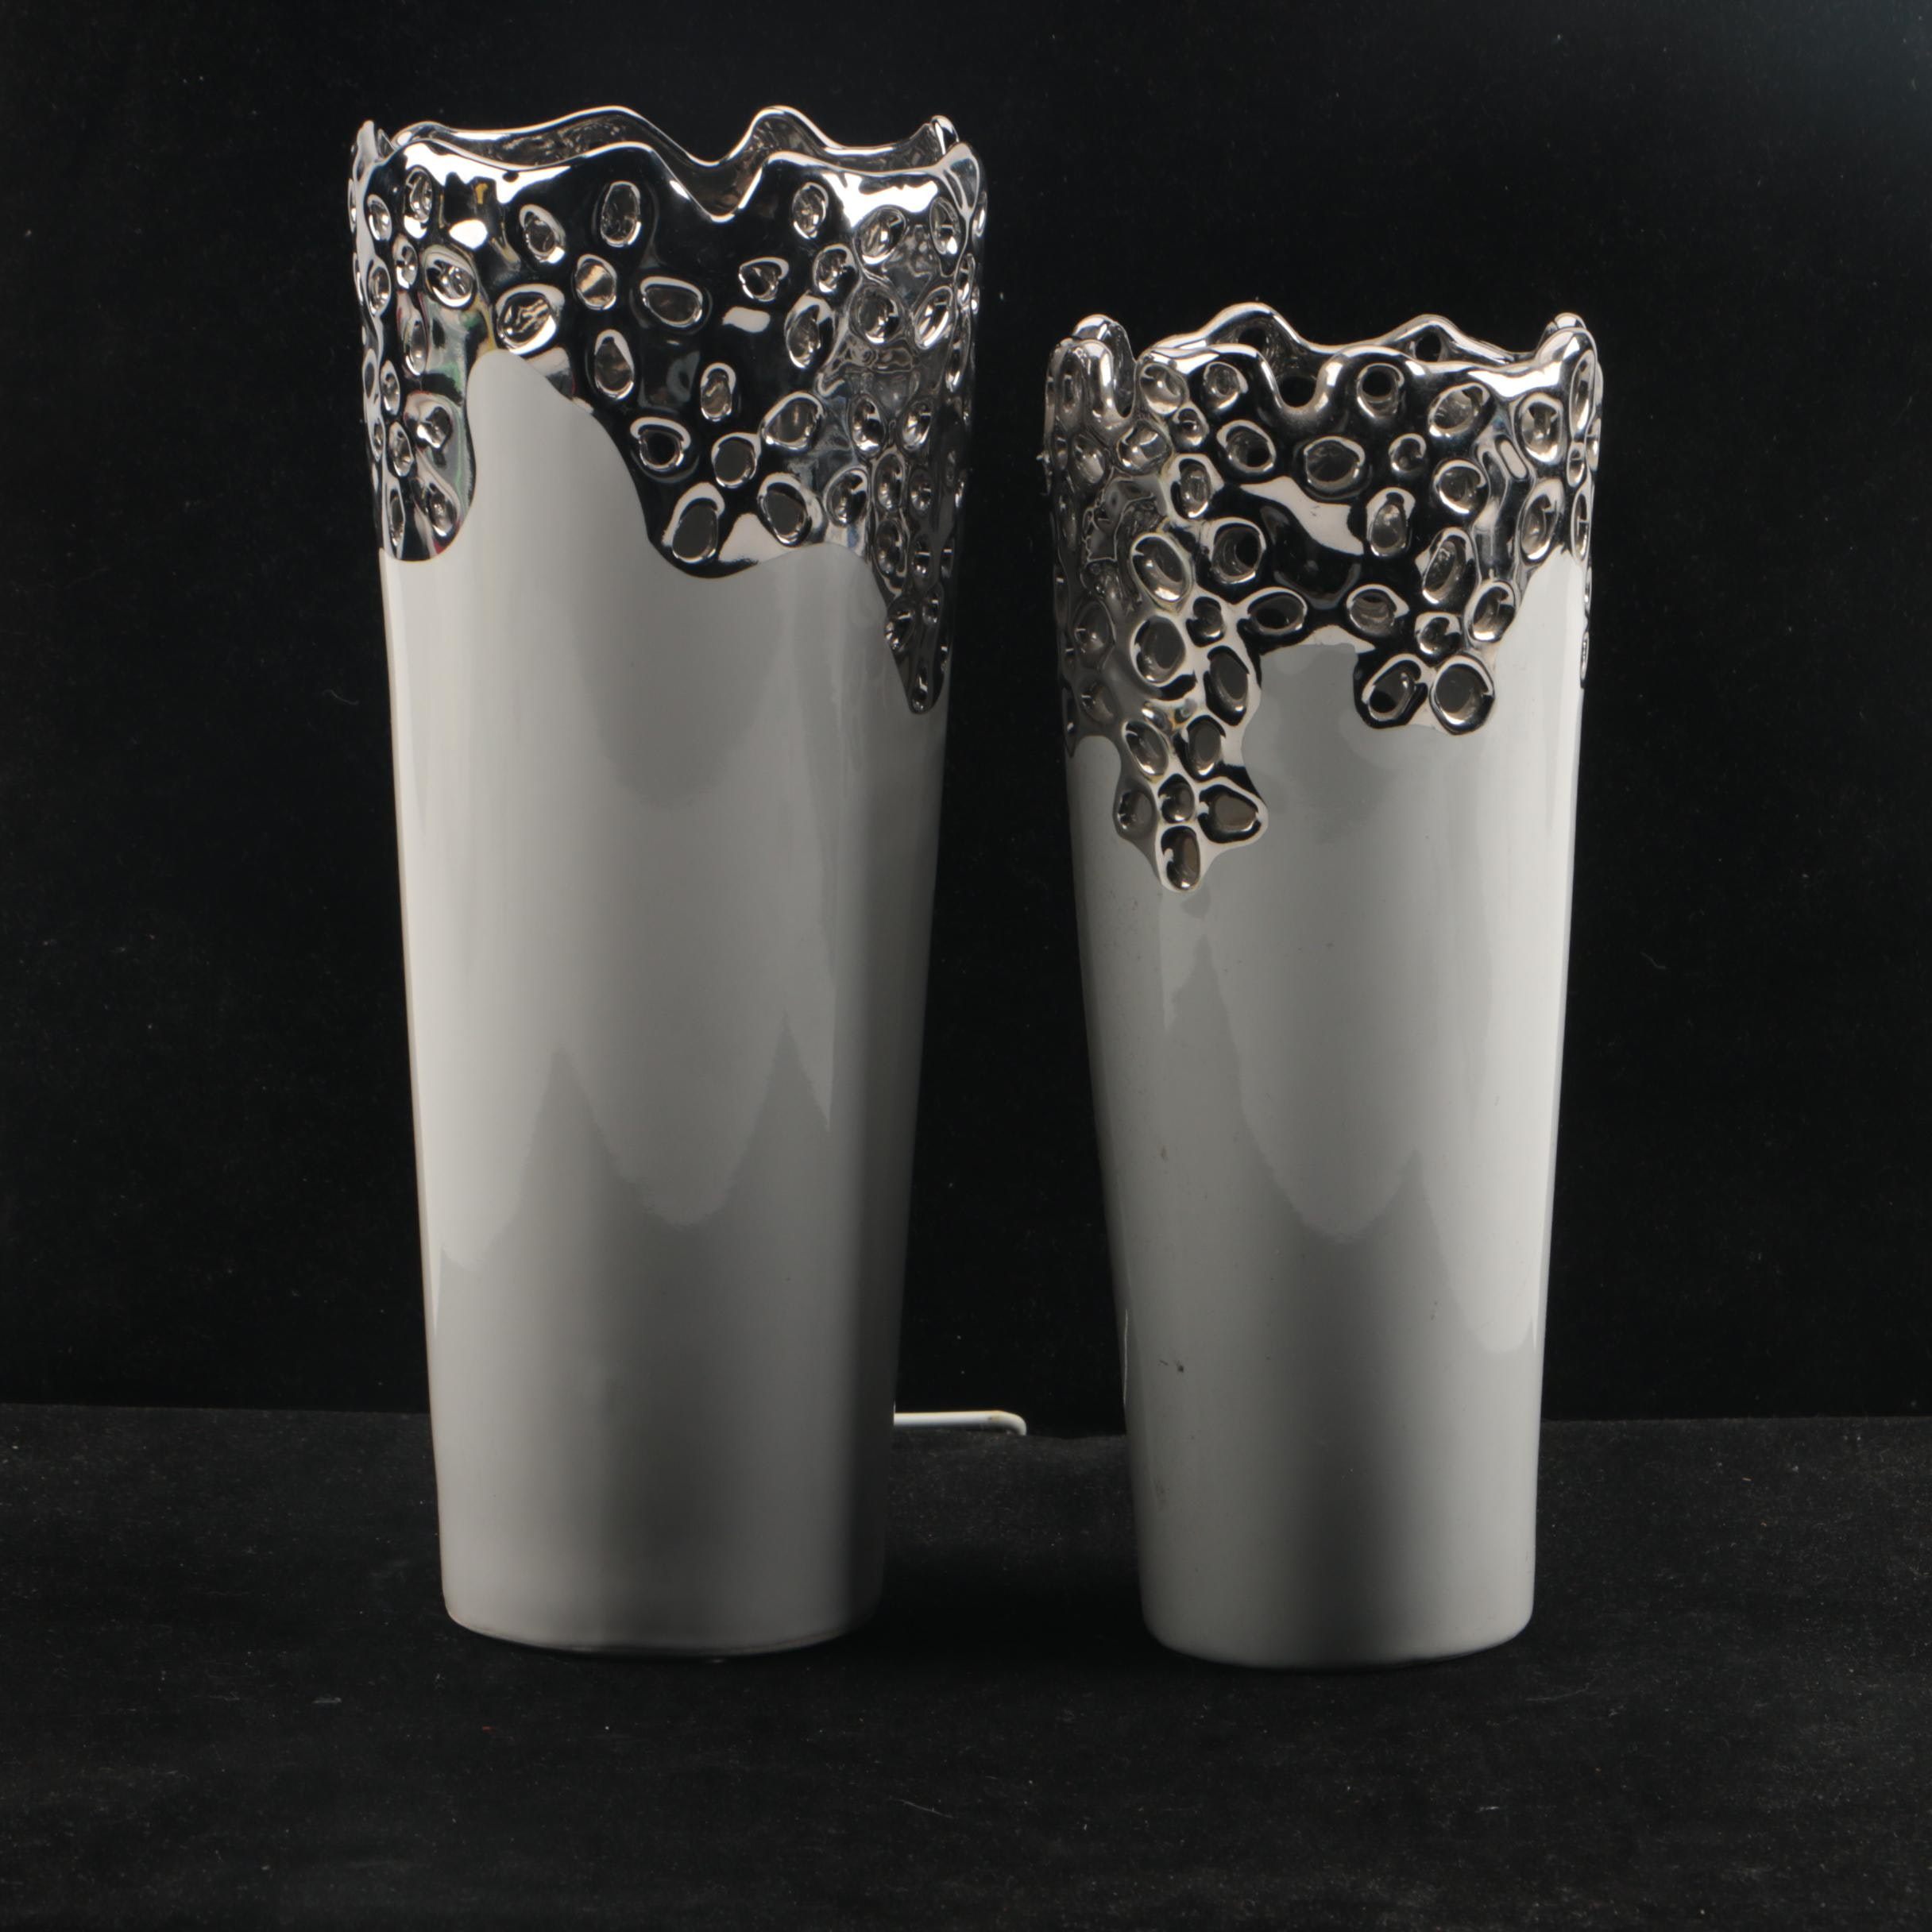 Contemporary Reticulated Ceramic Vase Forms with Metallic Accents